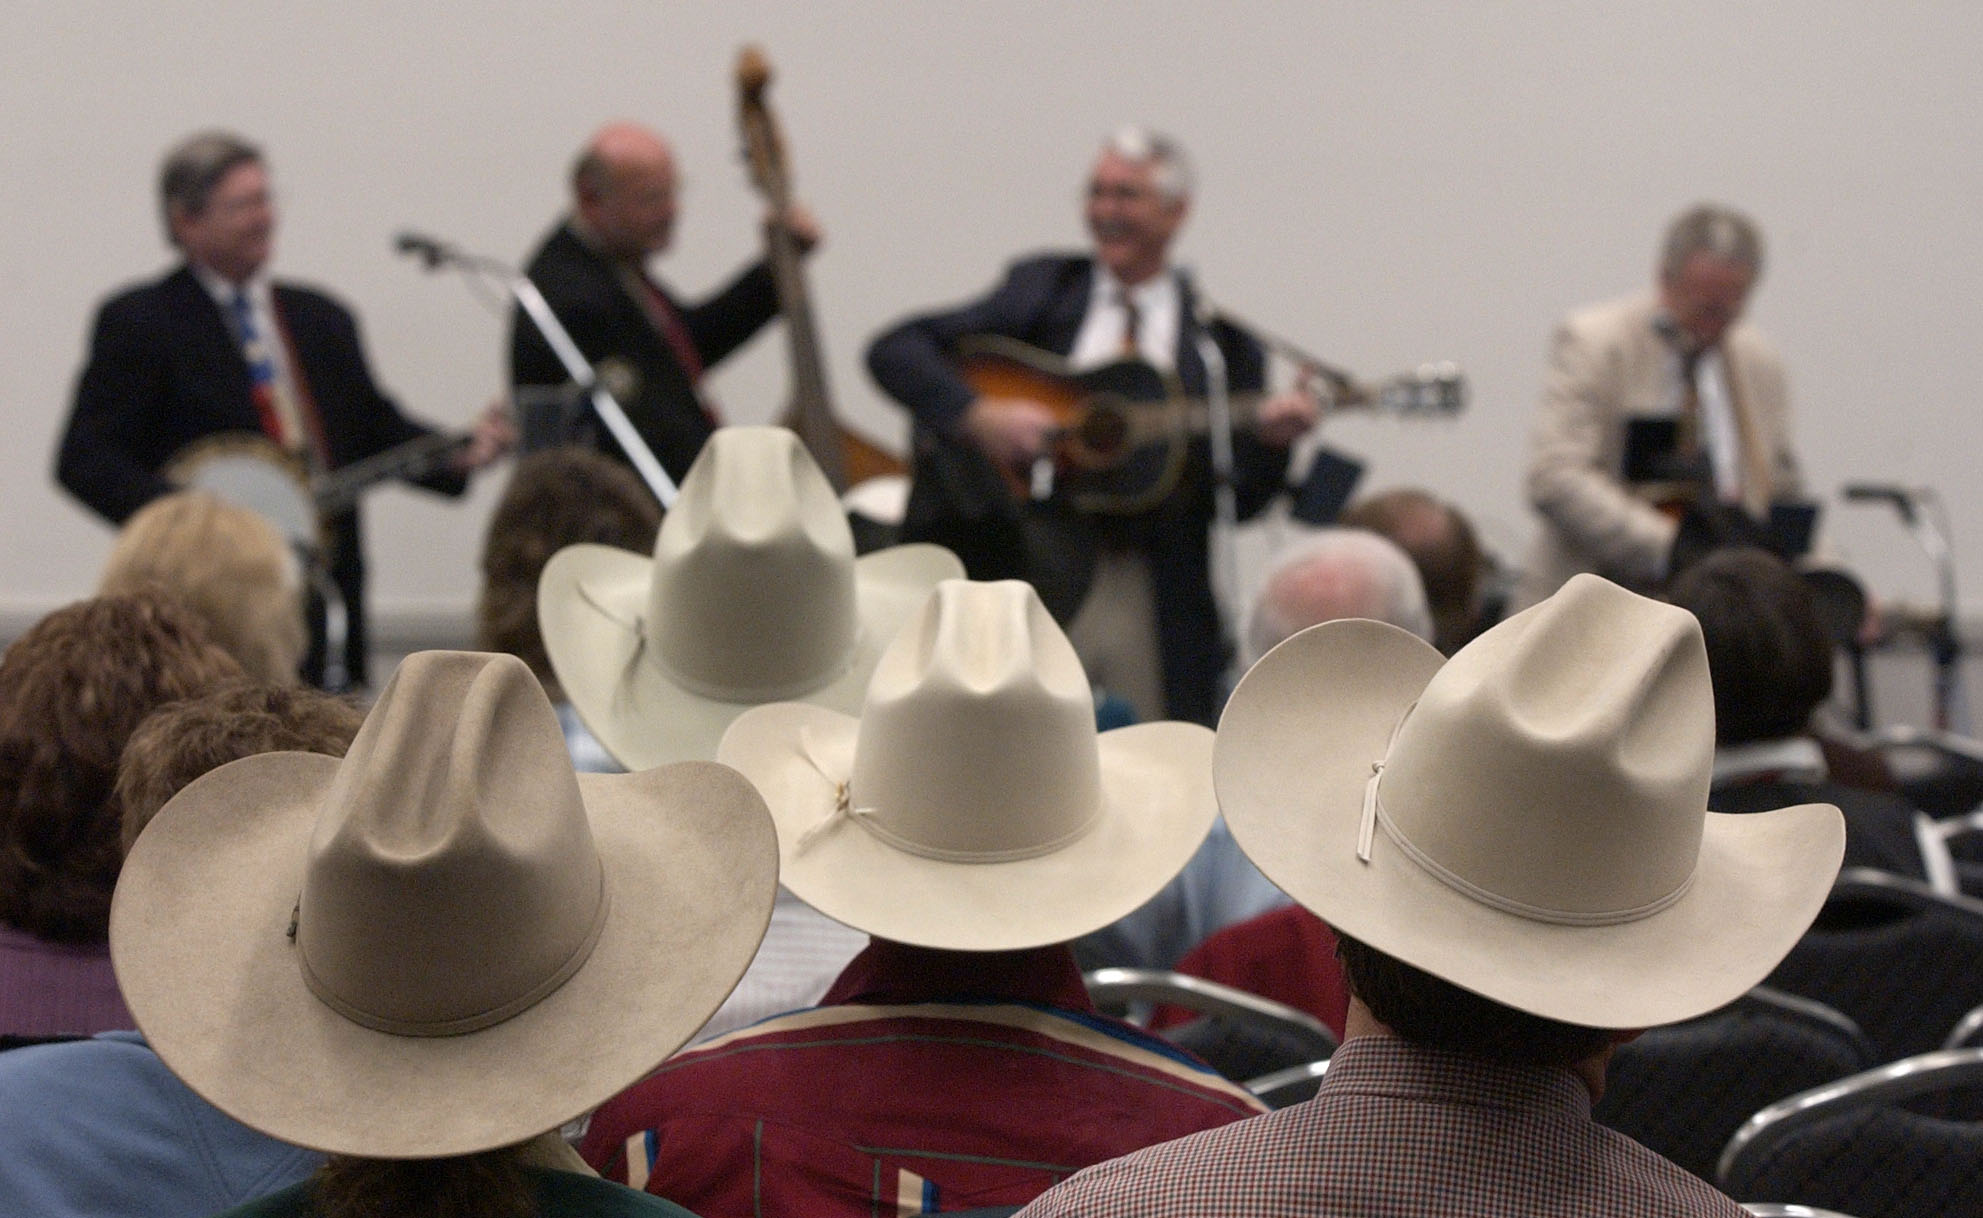 Lawmaker wants to make cowboy hat the official Texas topper -  HoustonChronicle.com 2f89b6e528d6